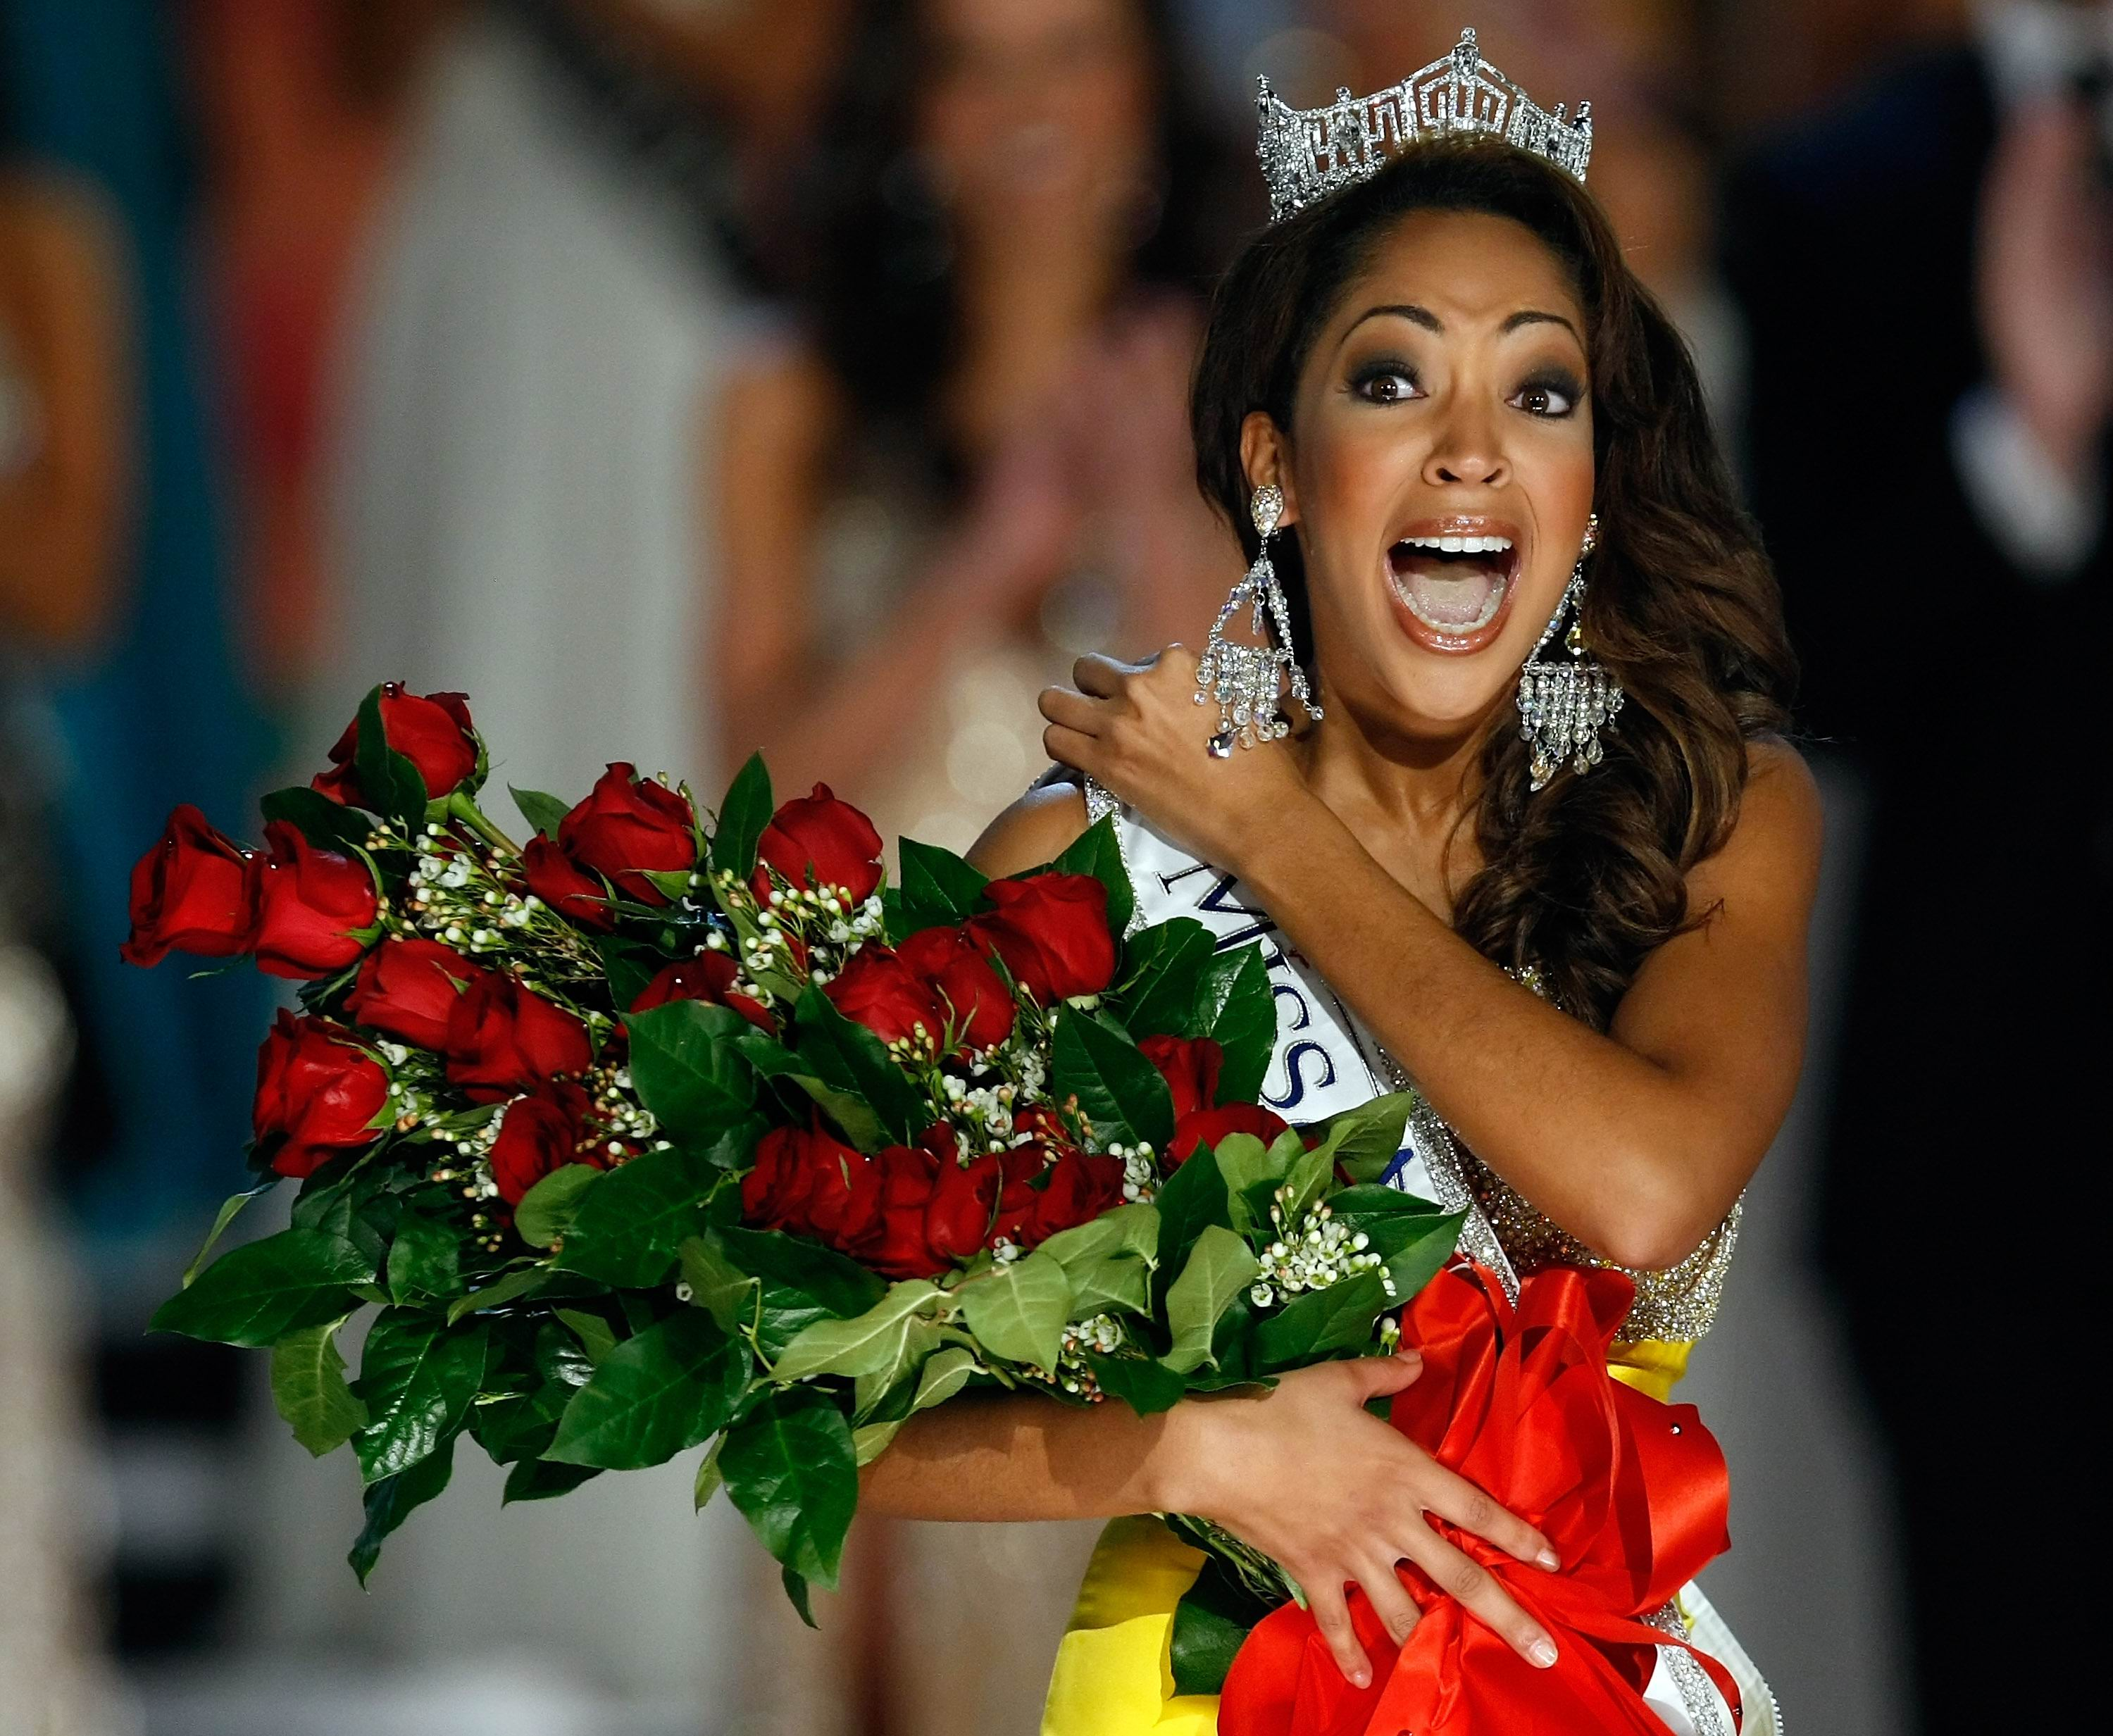 TLC Declines To Renew Miss America TV Contract | Access Online